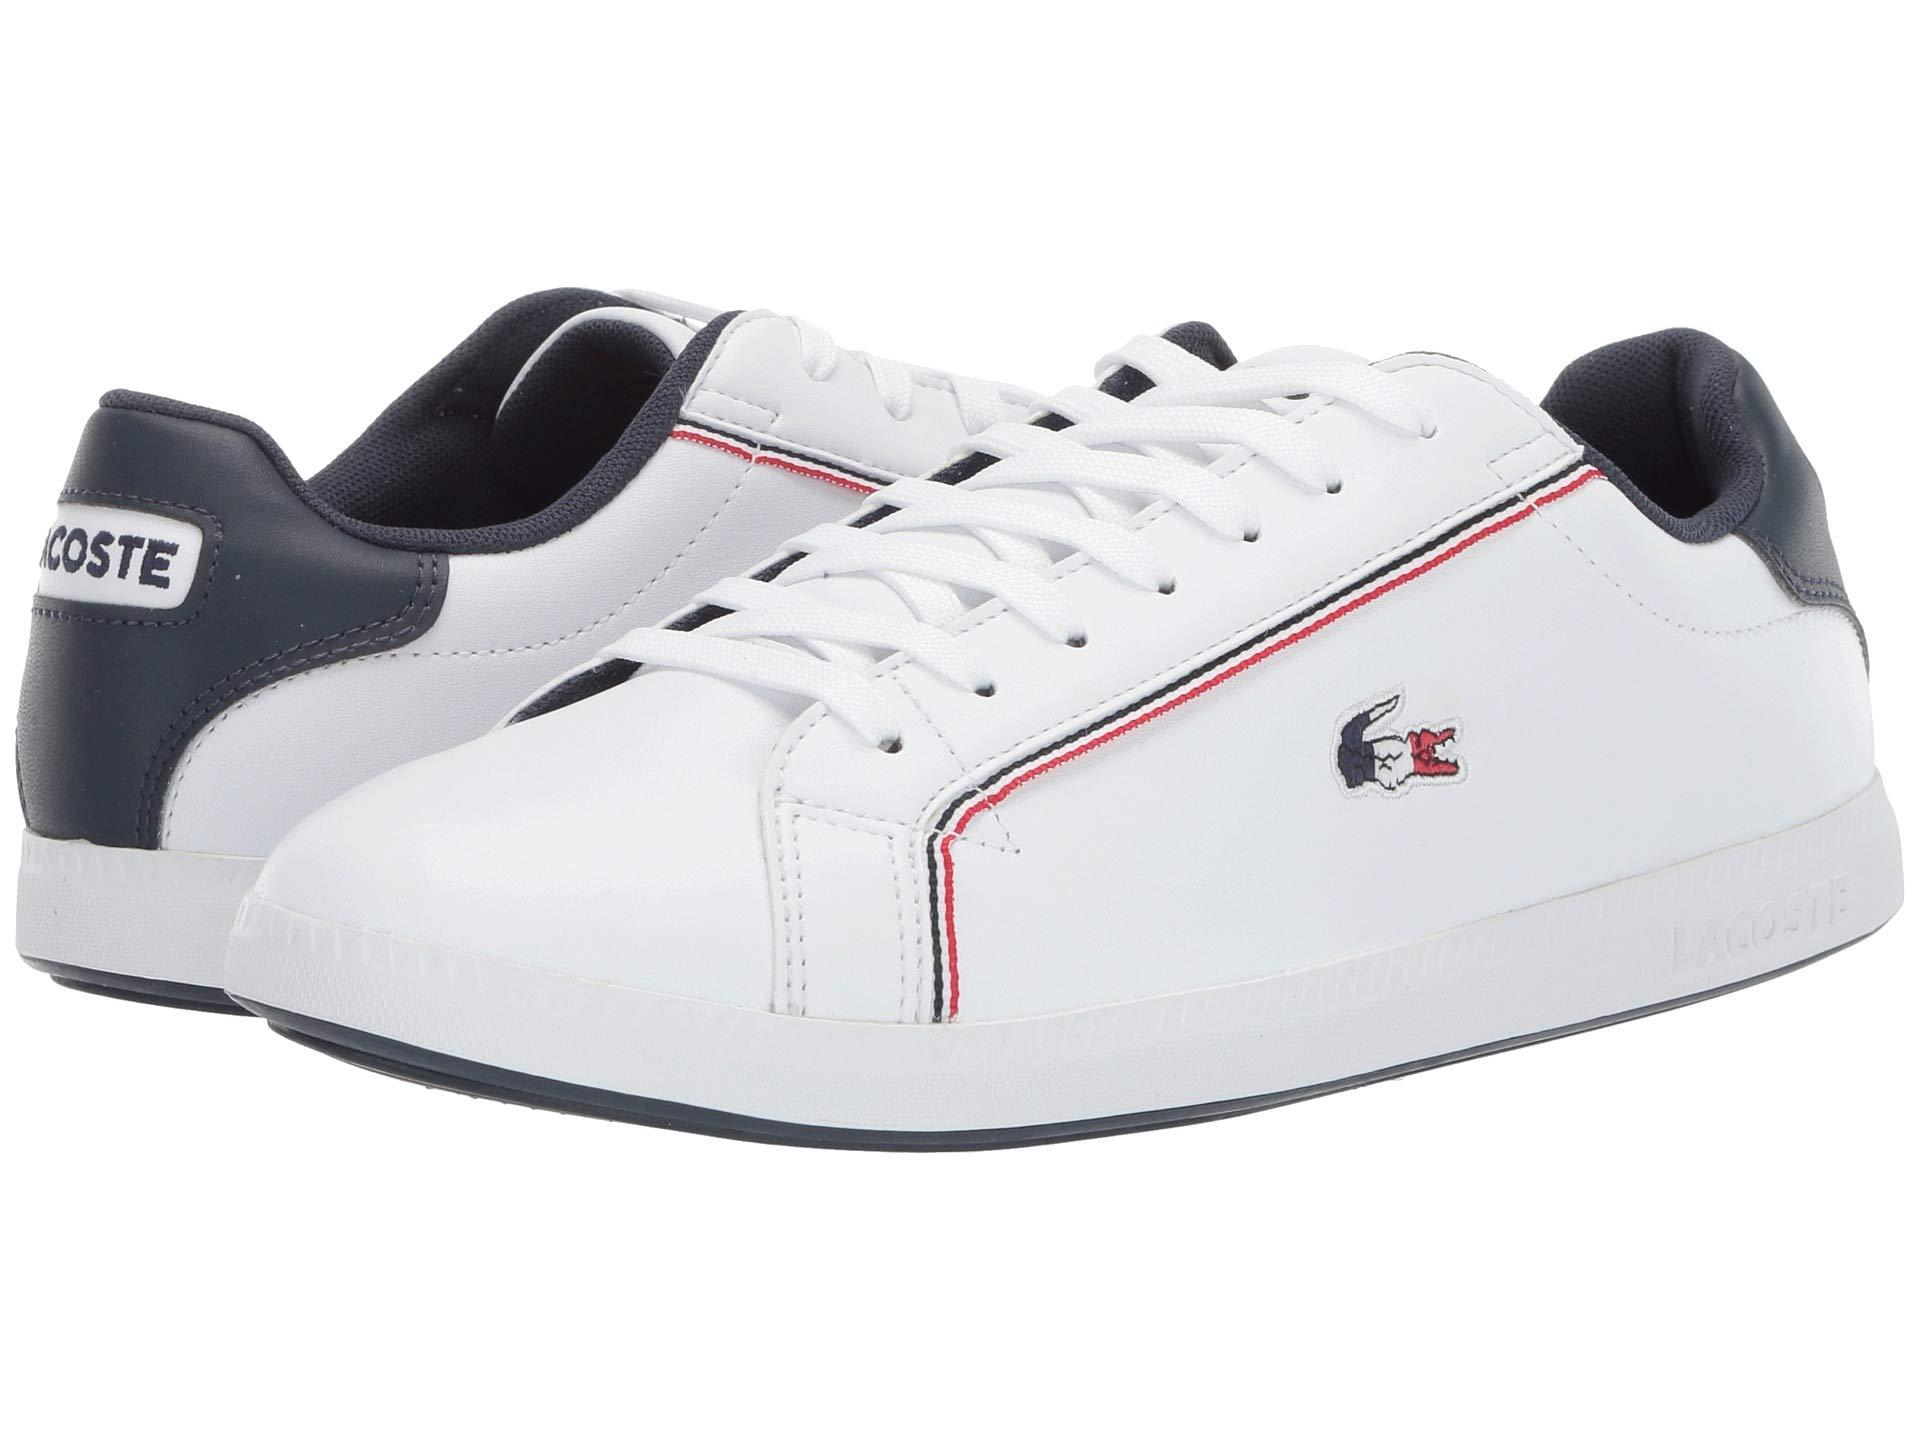 27a2ee08f557dc Lyst - Lacoste Graduate 119 3 Sma (white navy red) Men s Shoes in ...